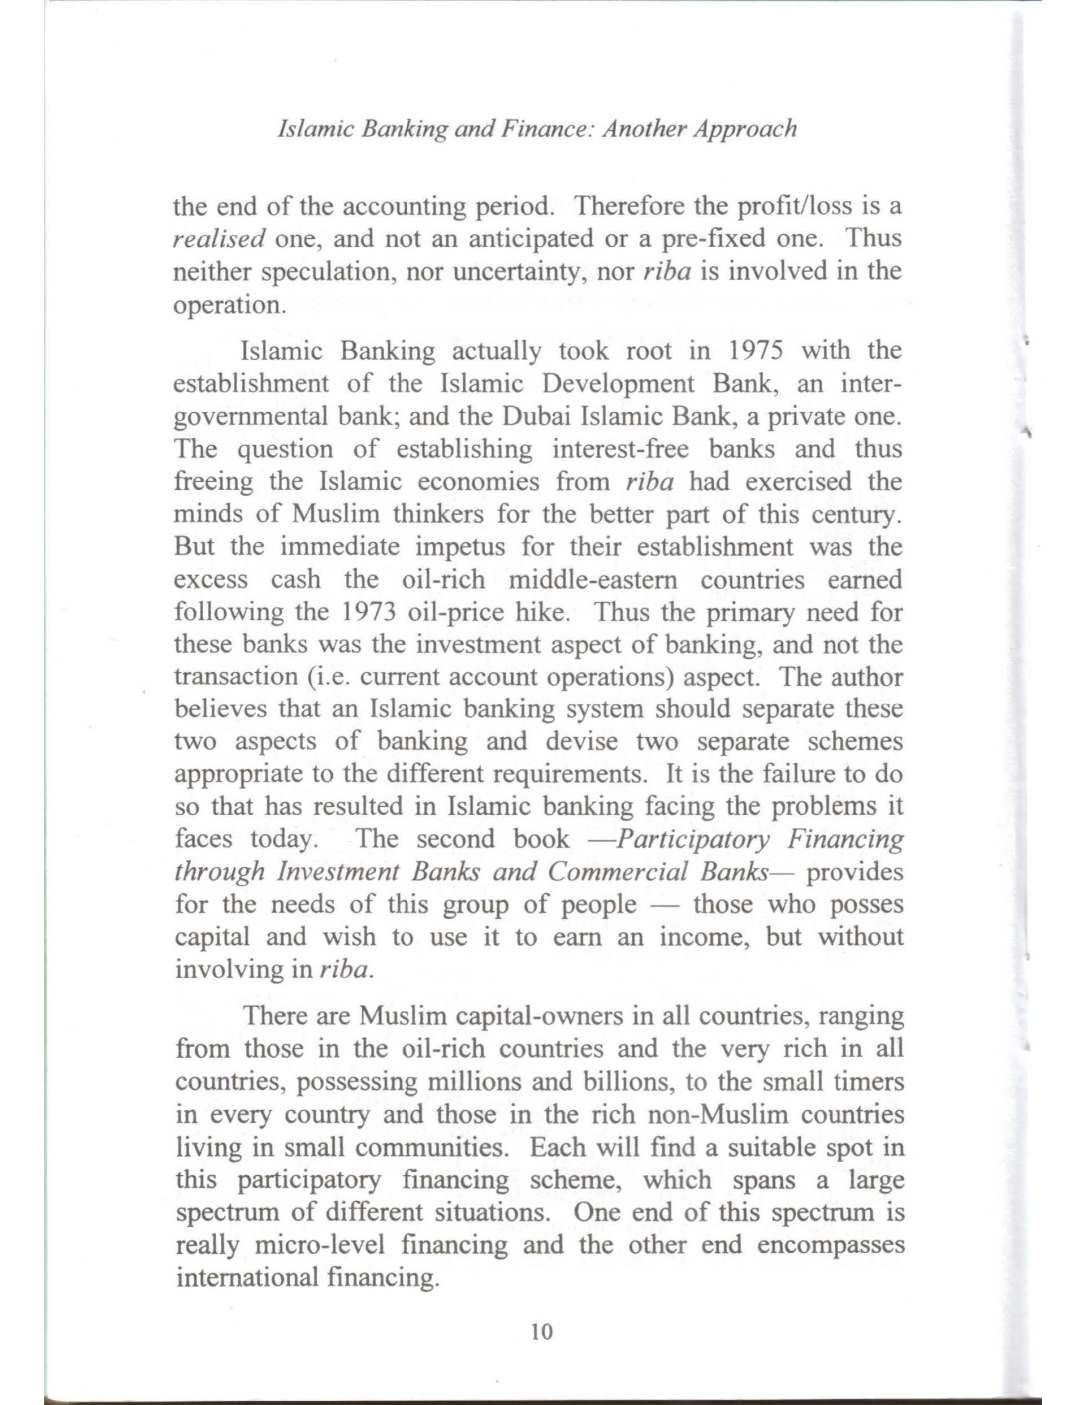 Islamic Banking and Finance - Another Approach_Page_11